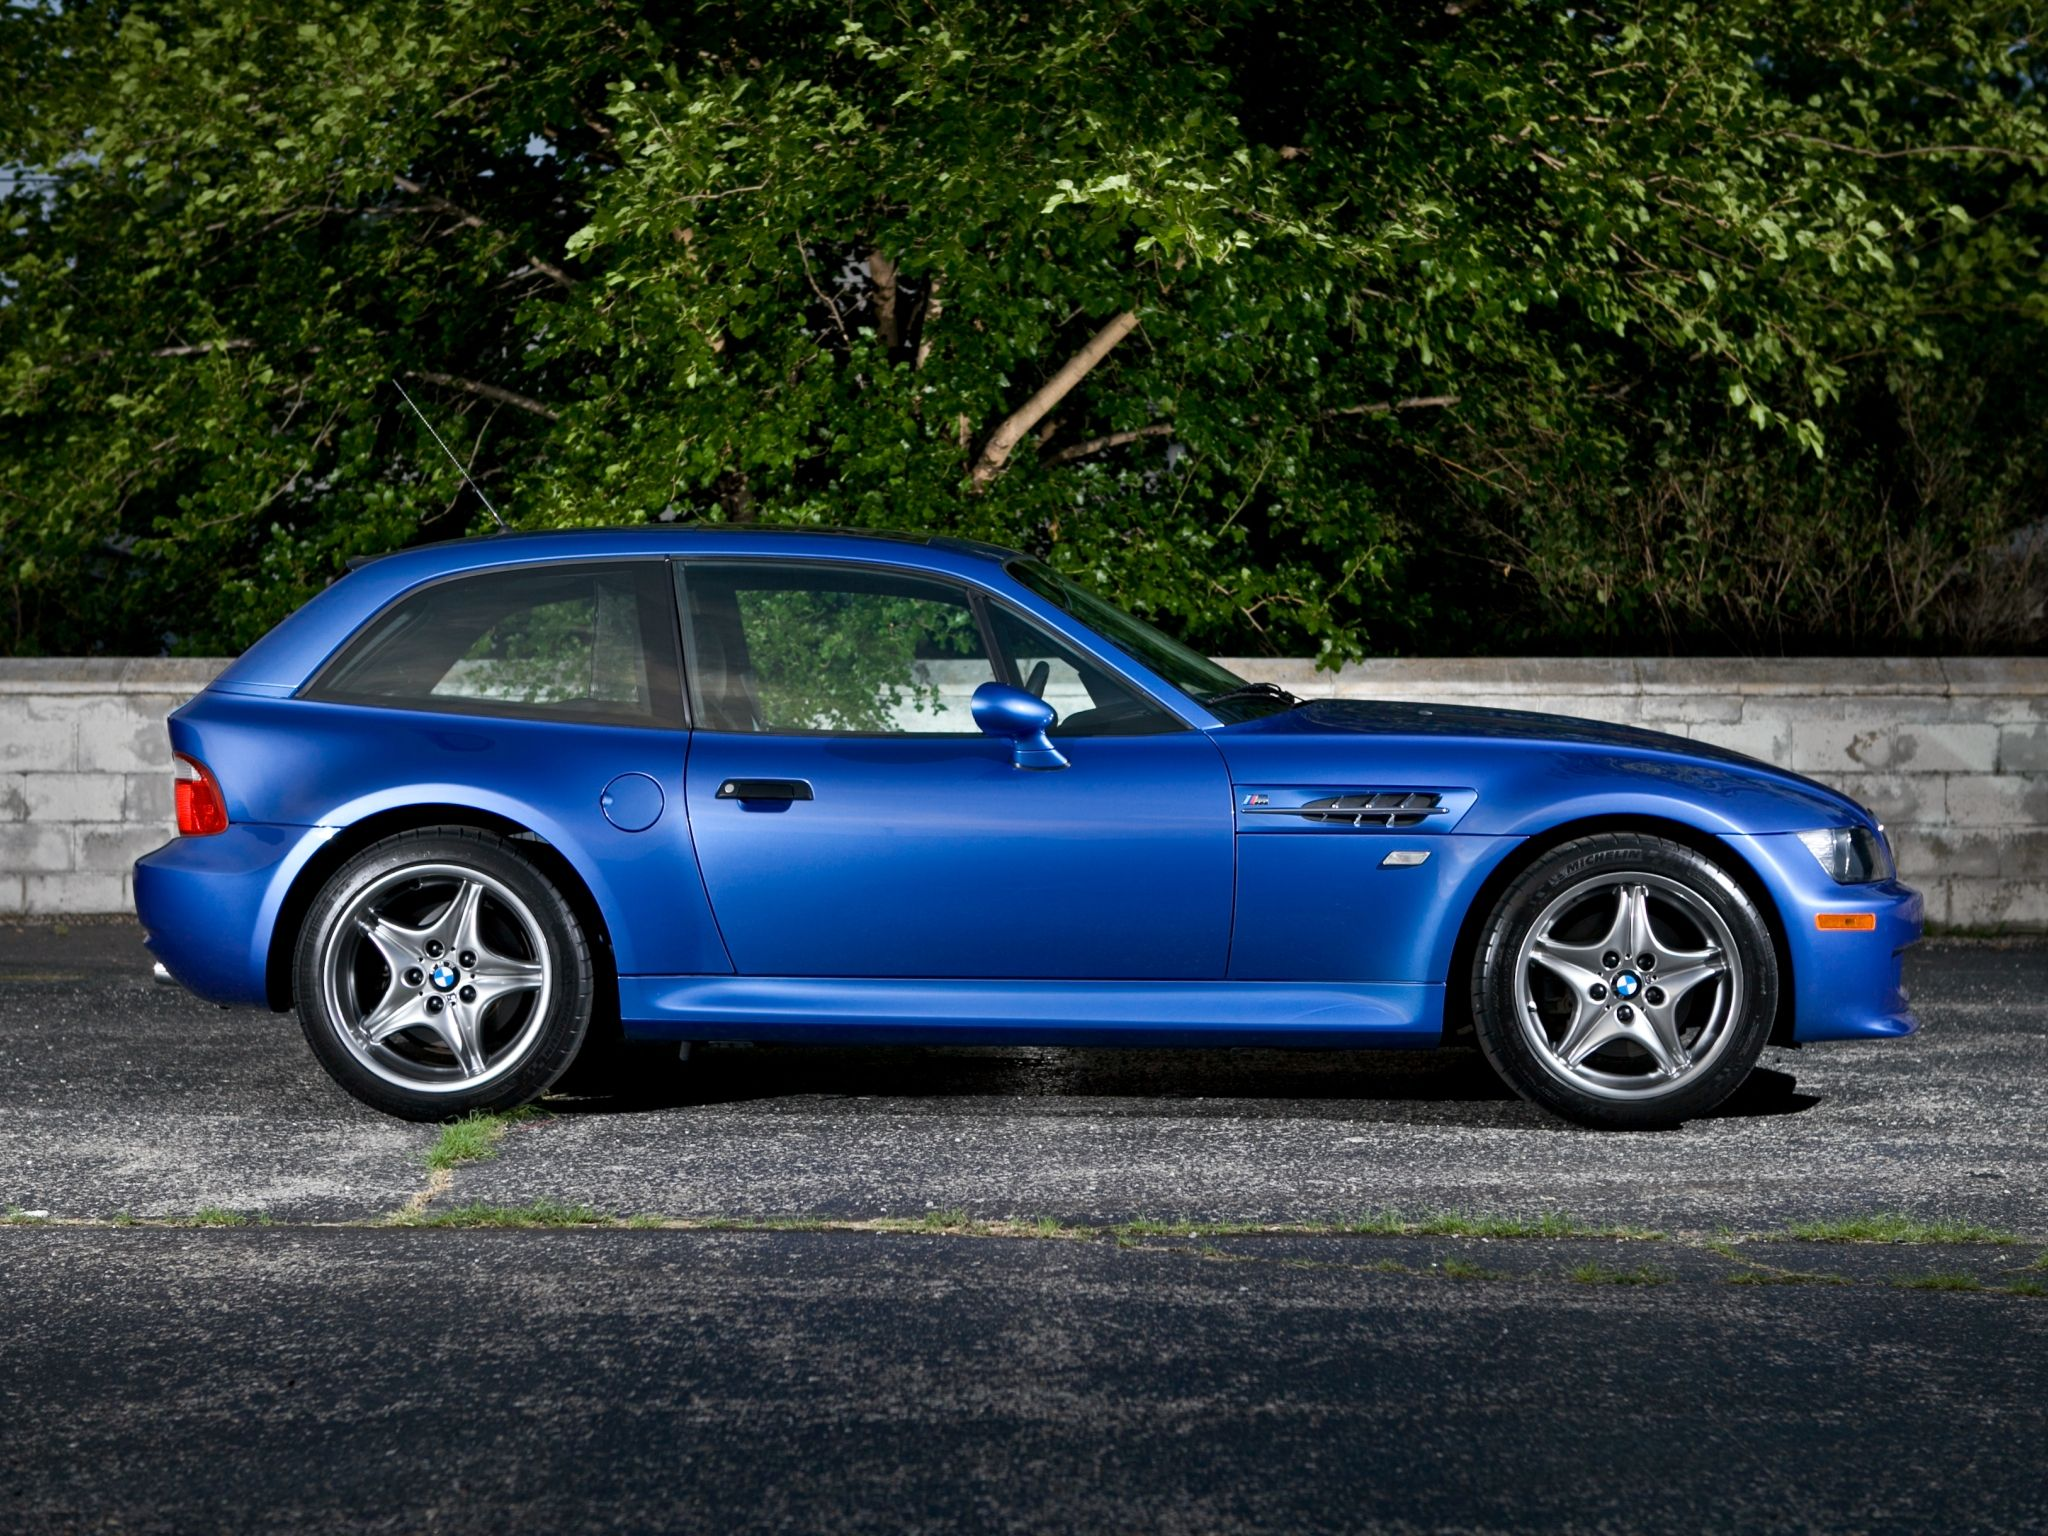 medium resolution of bmw m coupe the ultimate shooting brake and practical sports car built by enthusiastic german engineers m series engine and room for dogs